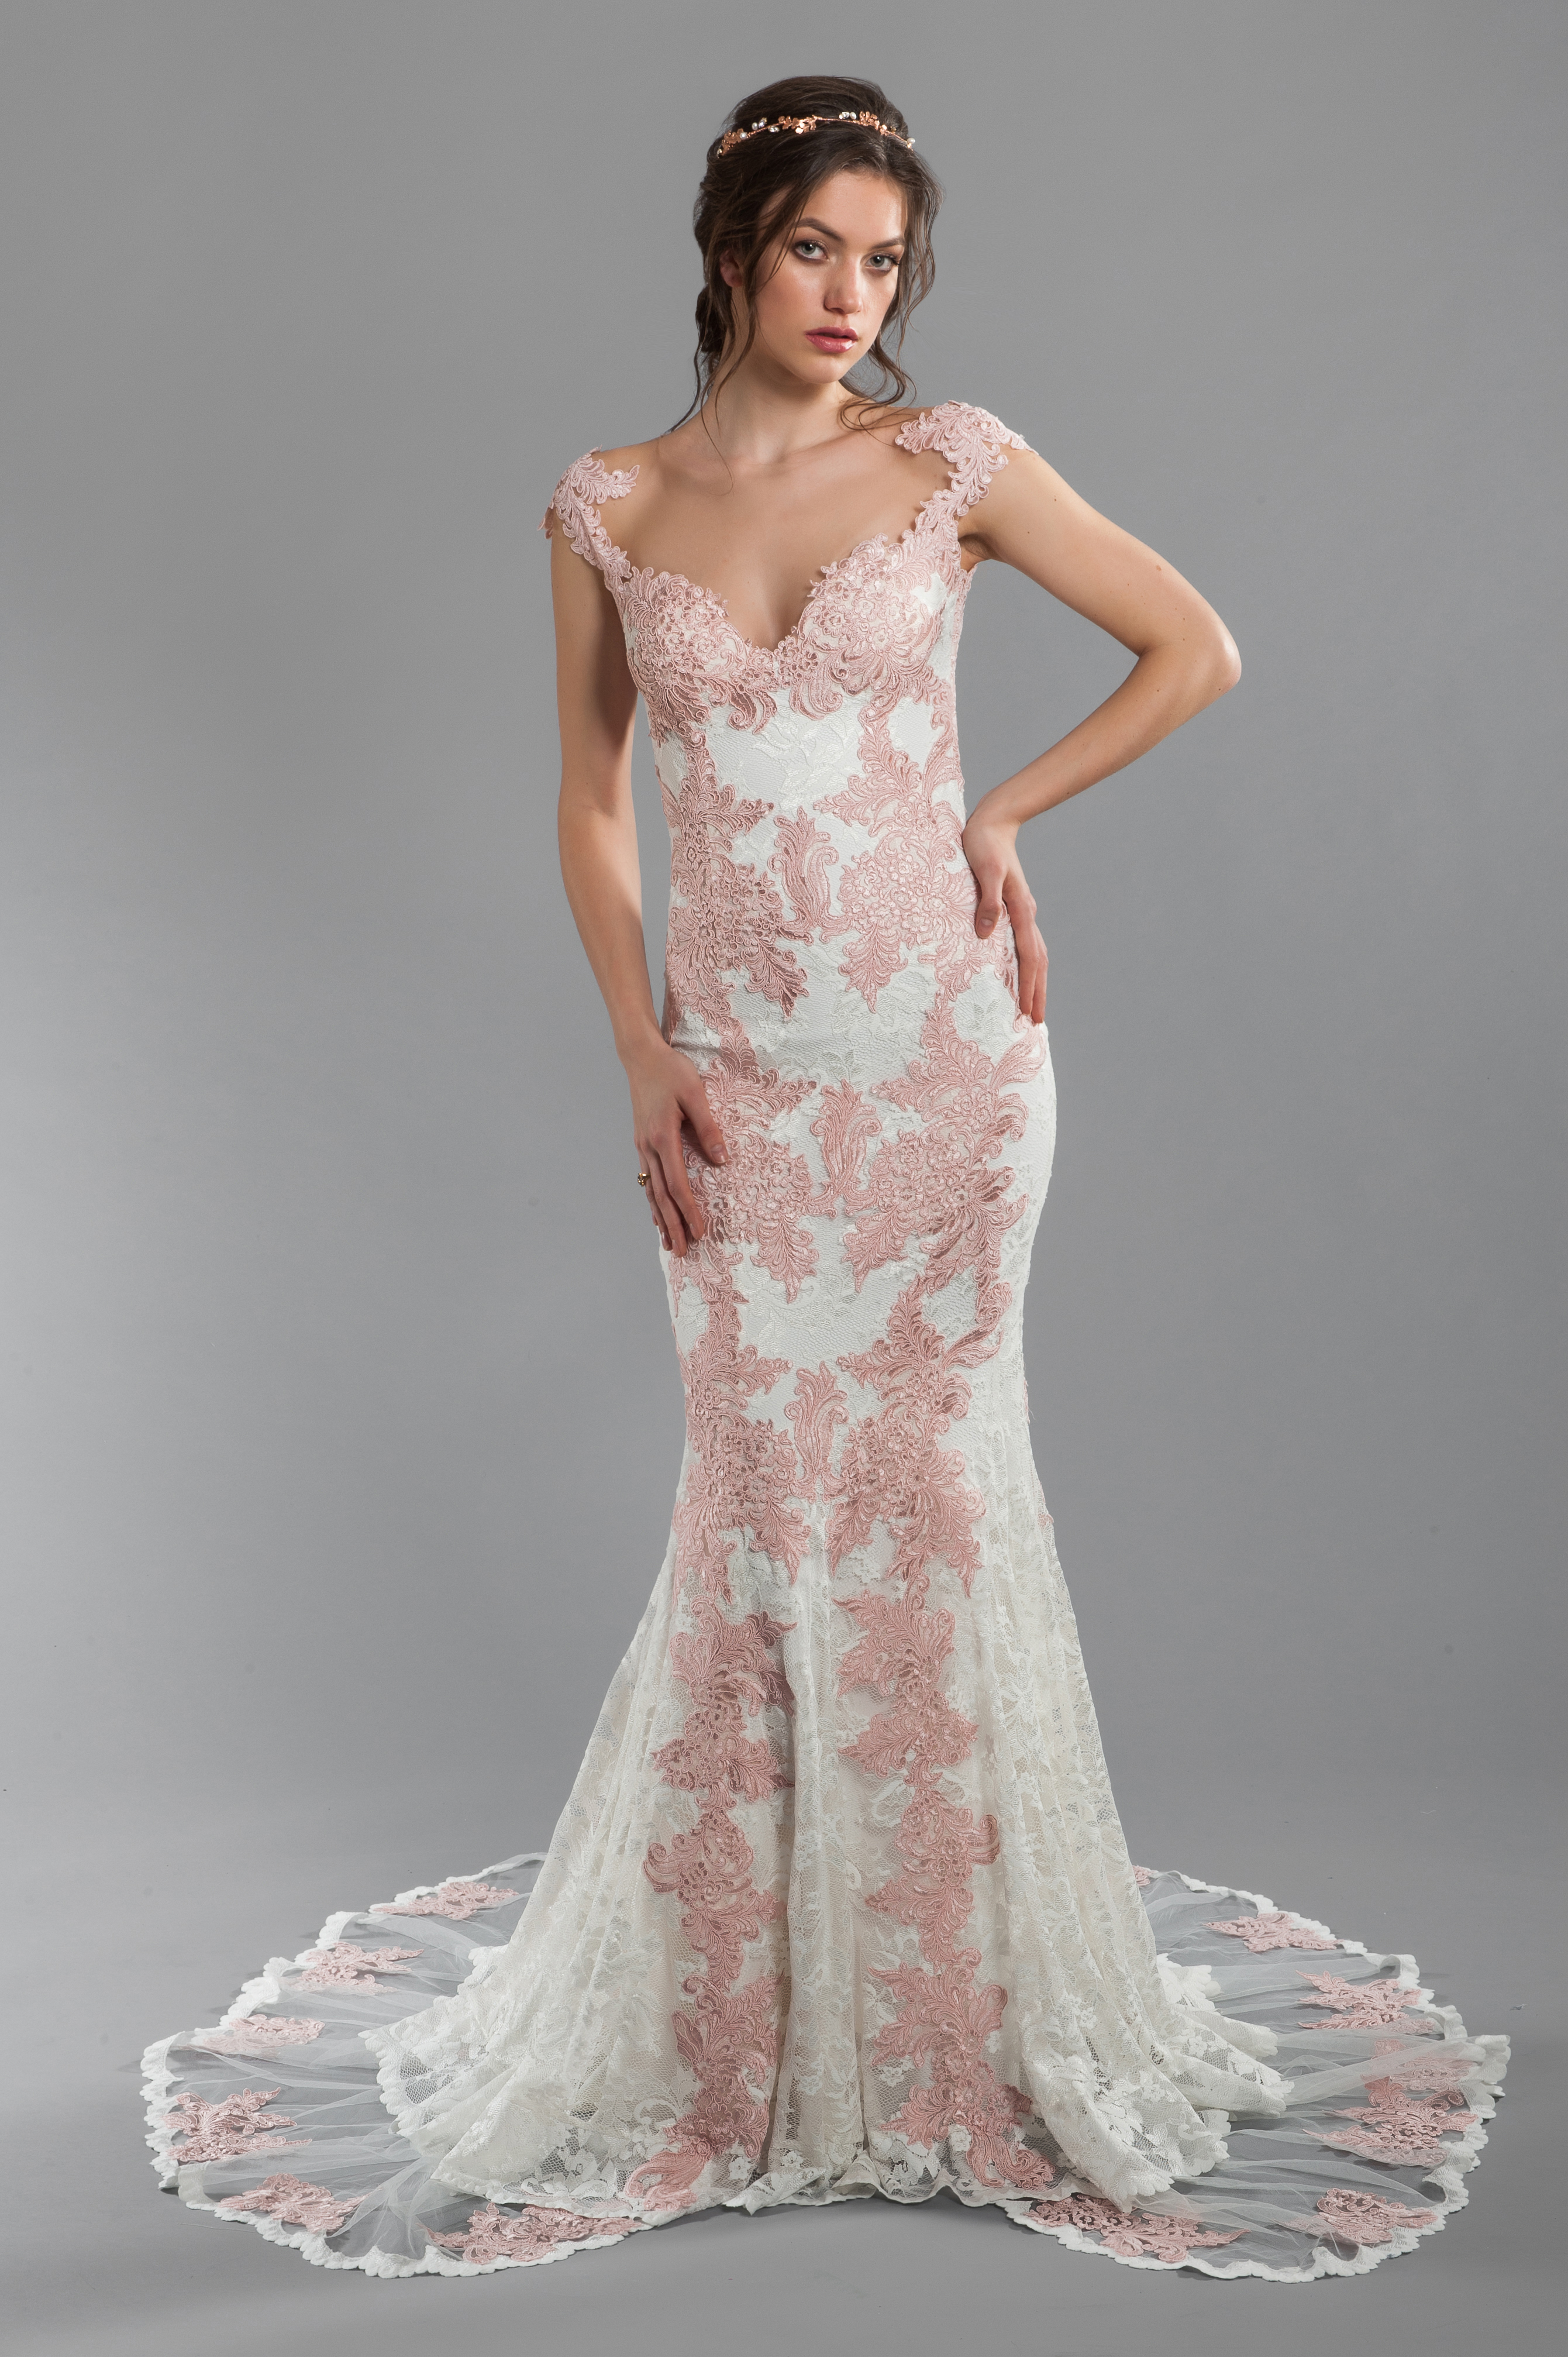 Rose And Ivory Lace Sheath Wedding Dress With Illusion Back And ...